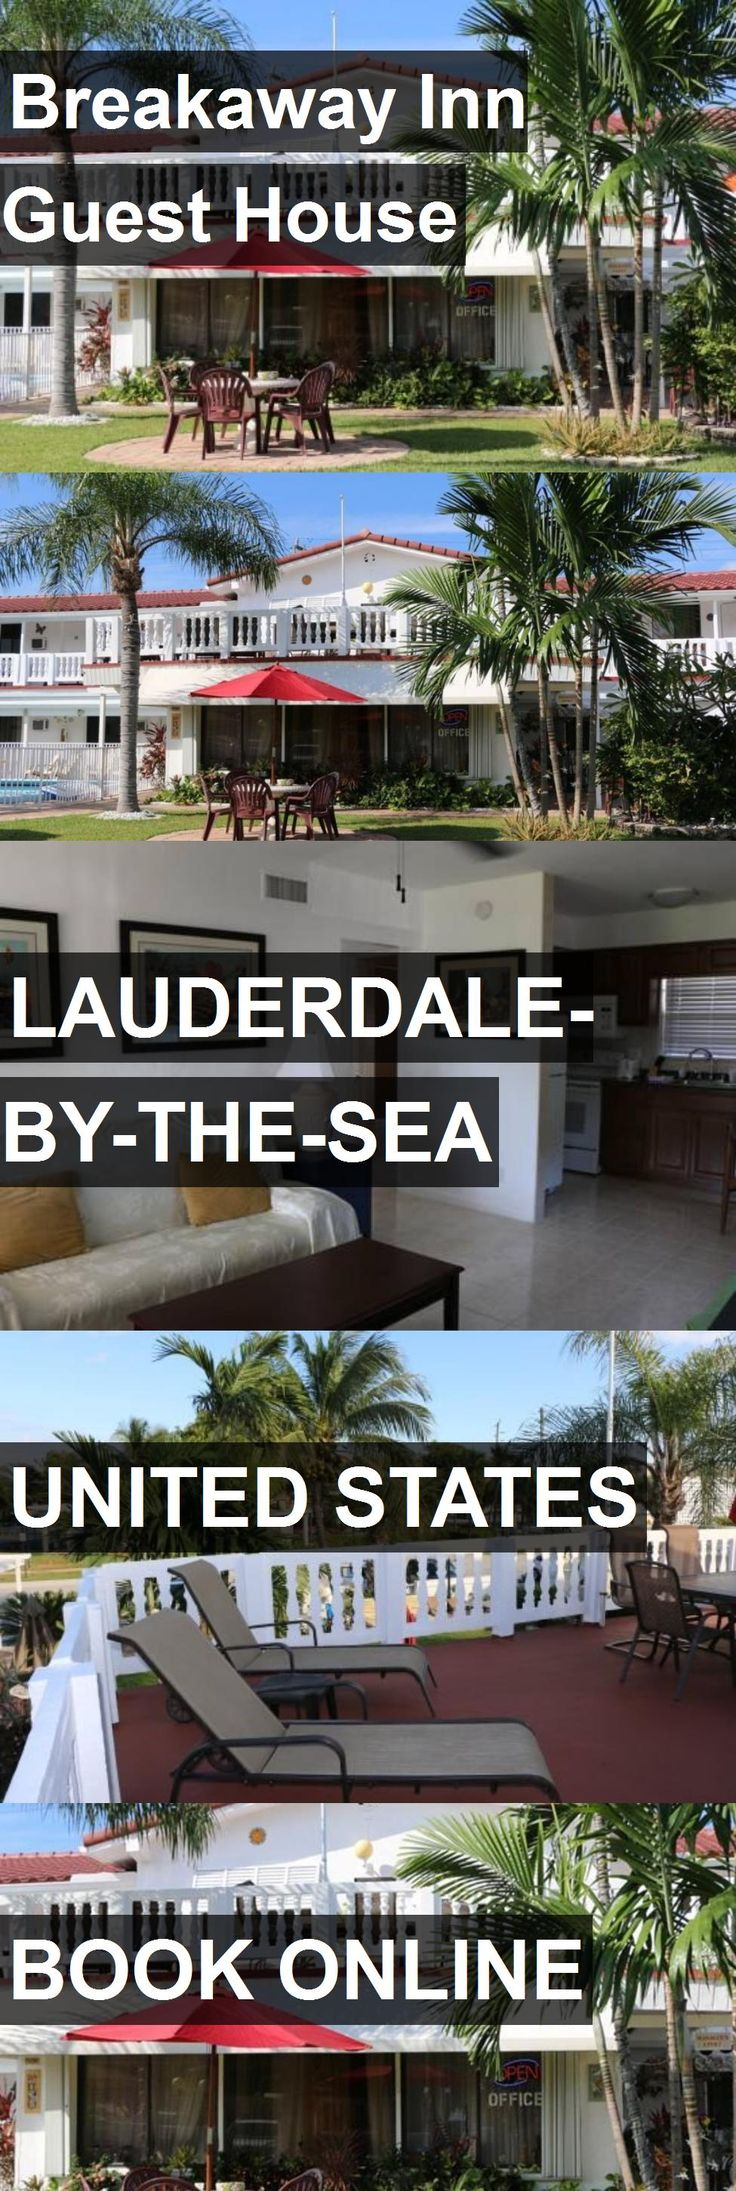 Breakaway Inn Guest House in Lauderdale-By-The-Sea, United States. For more information, photos, reviews and best prices please follow the link. #UnitedStates #Lauderdale-By-The-Sea #travel #vacation #guesthouse